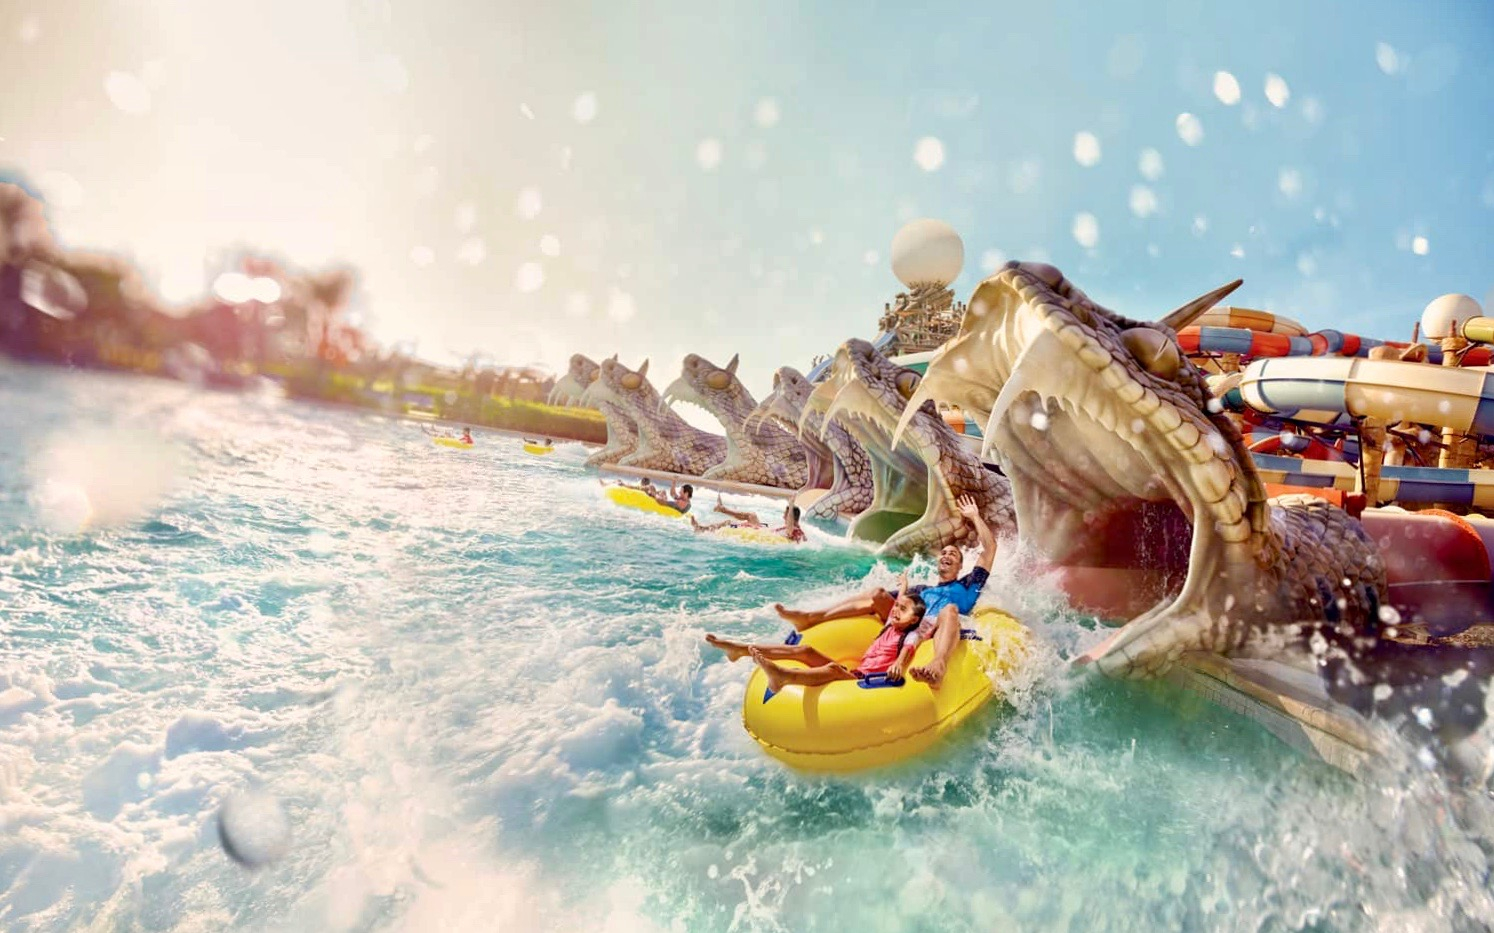 A1e67d28 0bb4 4436 af88 b285c2daccb7 1892 dubai yas waterworld   meal voucher 03